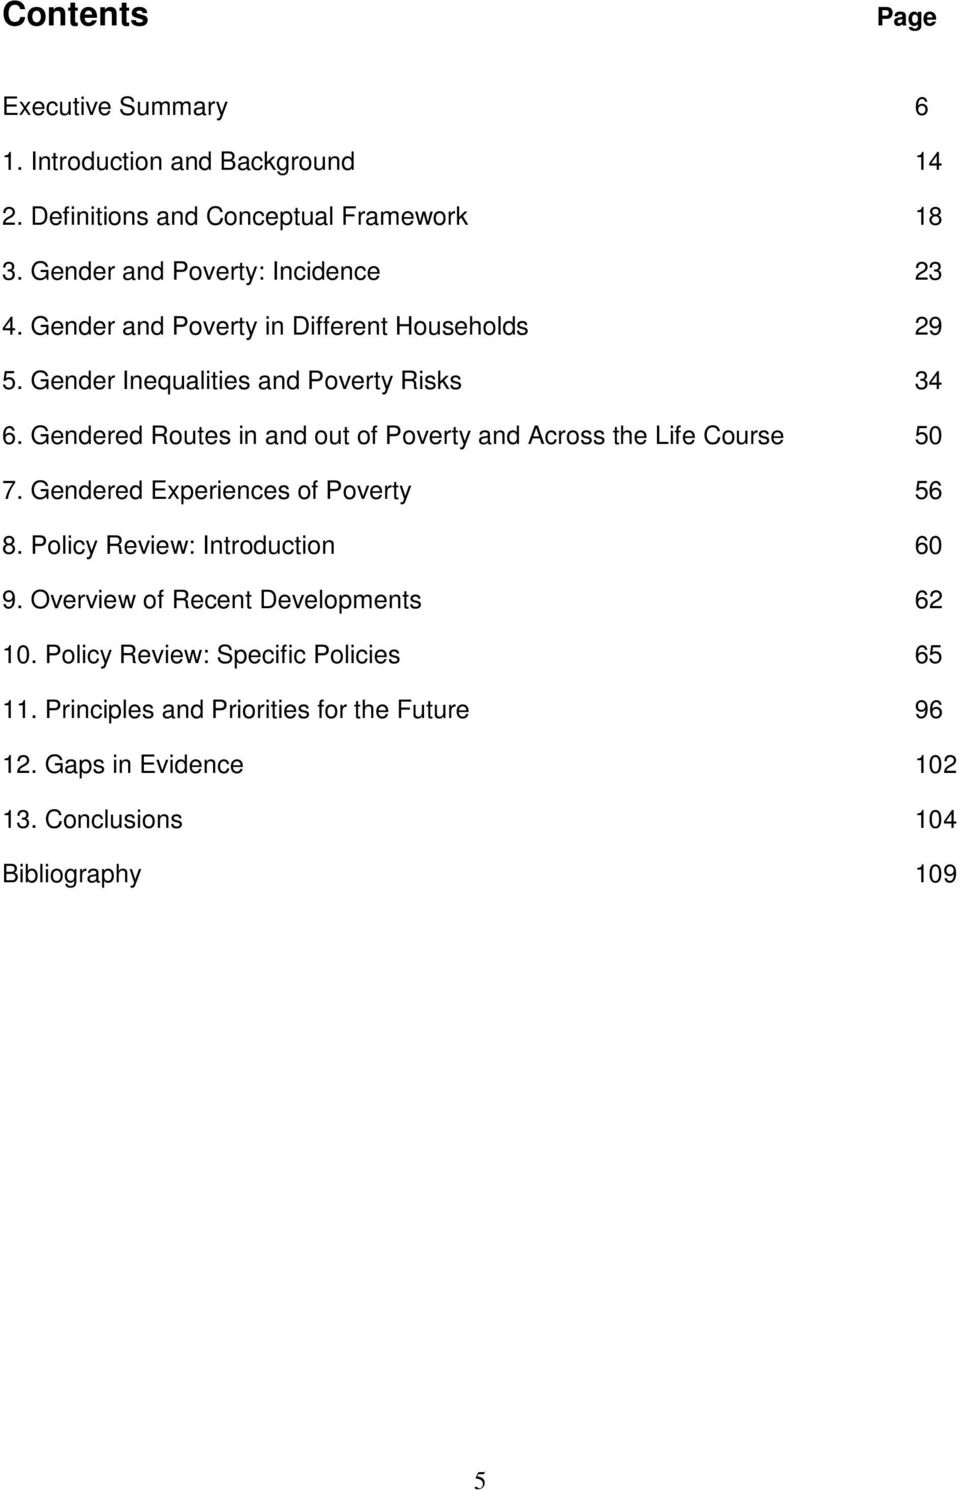 Gendered Routes in and out of Poverty and Across the Life Course 50 7. Gendered Experiences of Poverty 56 8. Policy Review: Introduction 60 9.